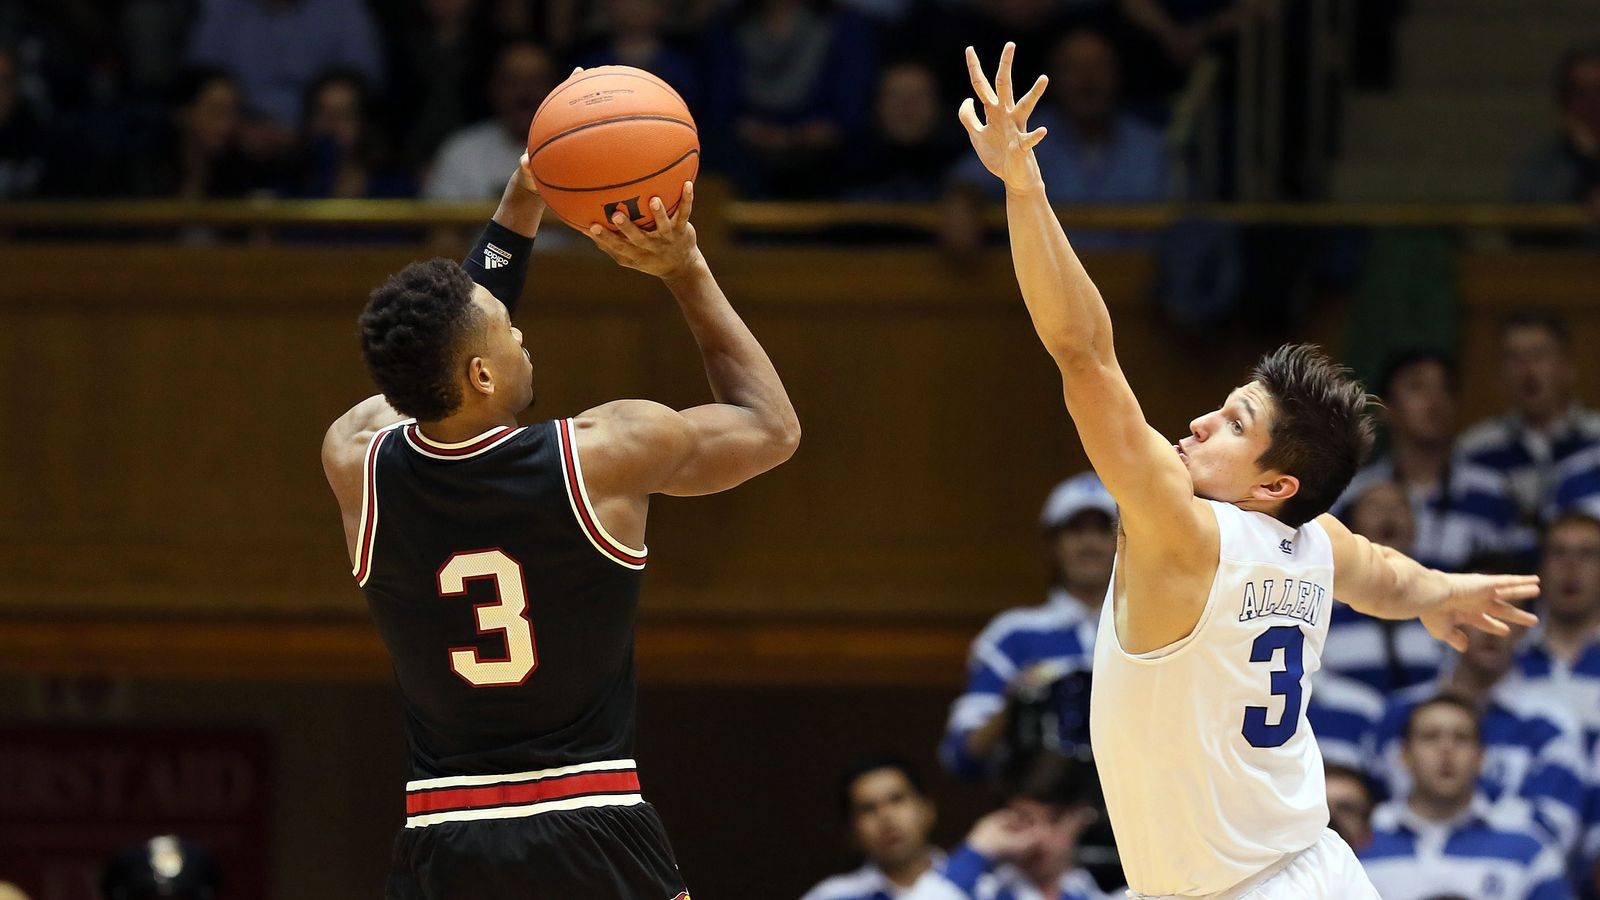 Get the latest Louisville Cardinals news scores stats standings rumors and more from ESPN